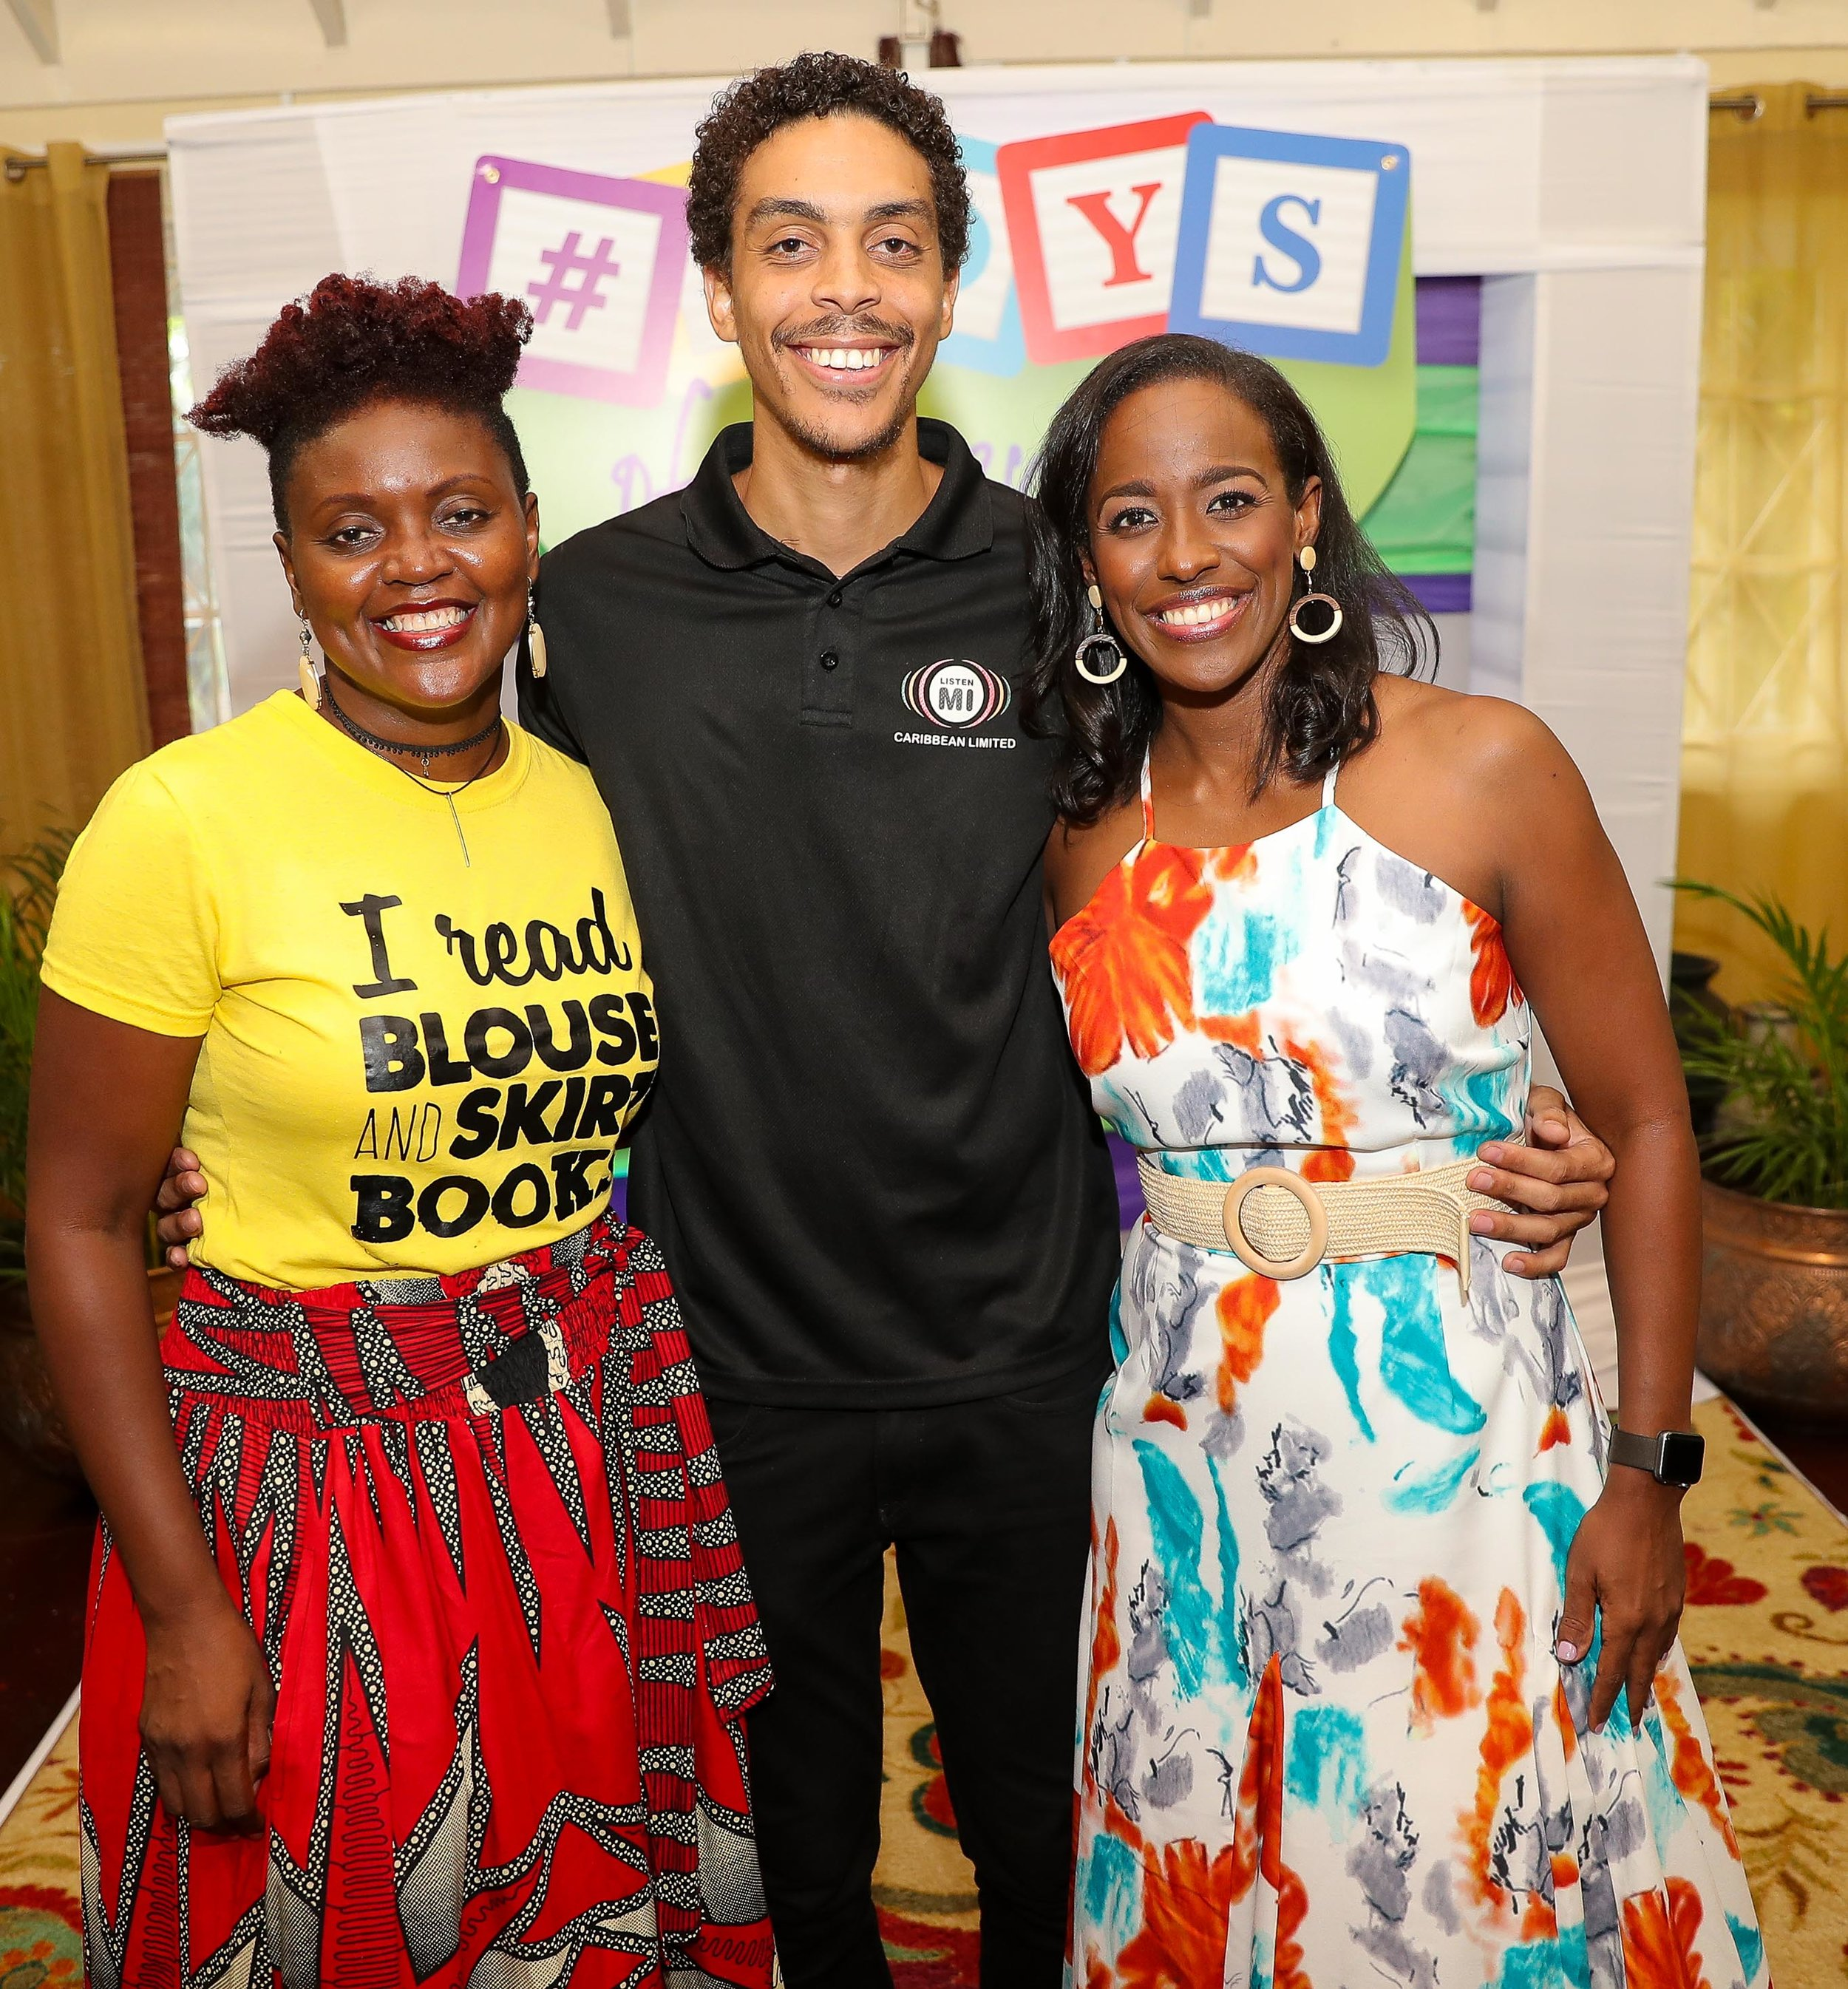 The #Joys Team - Carlette DeLeon (r) author of the #JoysOfParenting shared the joyous launch of the book with Tanya Batson Savage owner of publishing house Blouse and Skirt Books and Patrick Meikle, illustrator of the book during the launch held on Saturday July 27 at the Hope Zoo Tree House